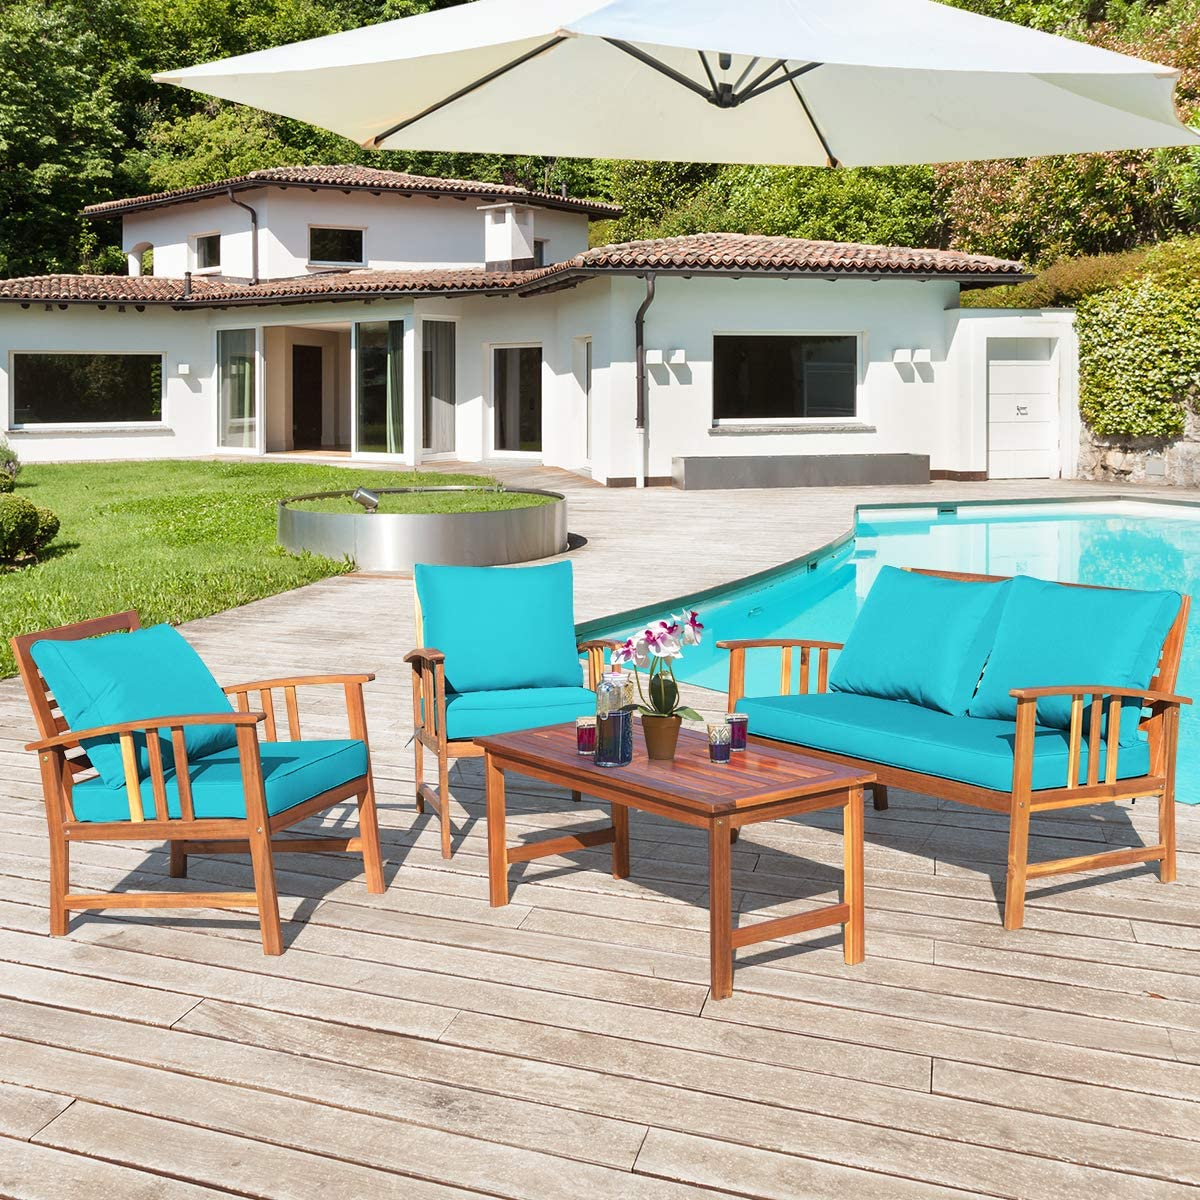 Tangkula 4 PCS Acacia Wood Patio Furniture Set, Outdoor Seating Chat Set w/Gray Cushions Back Pillow, Outdoor Conversation Set w/Coffee Table for Garden, Backyard, Poolside (Turquoise)